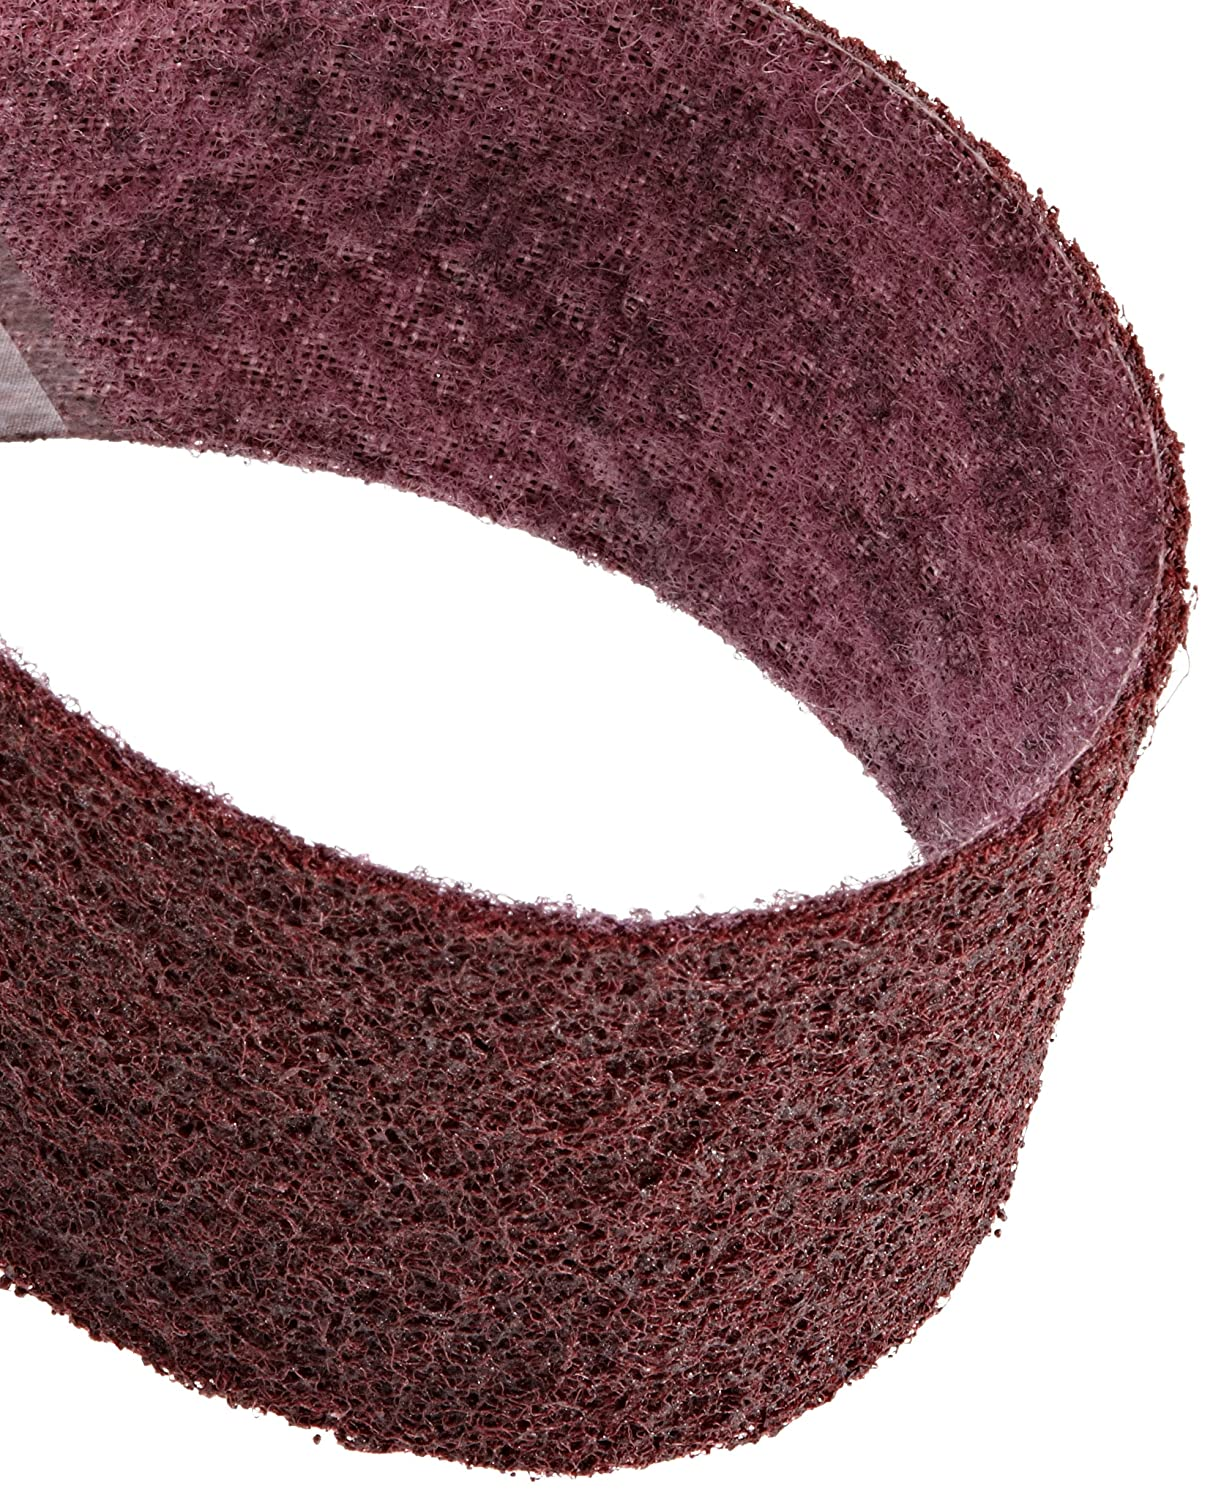 Maroon 72 Length x 2 Width Medium Pack of 1 Scotch-Brite  Surface Conditioning Belt